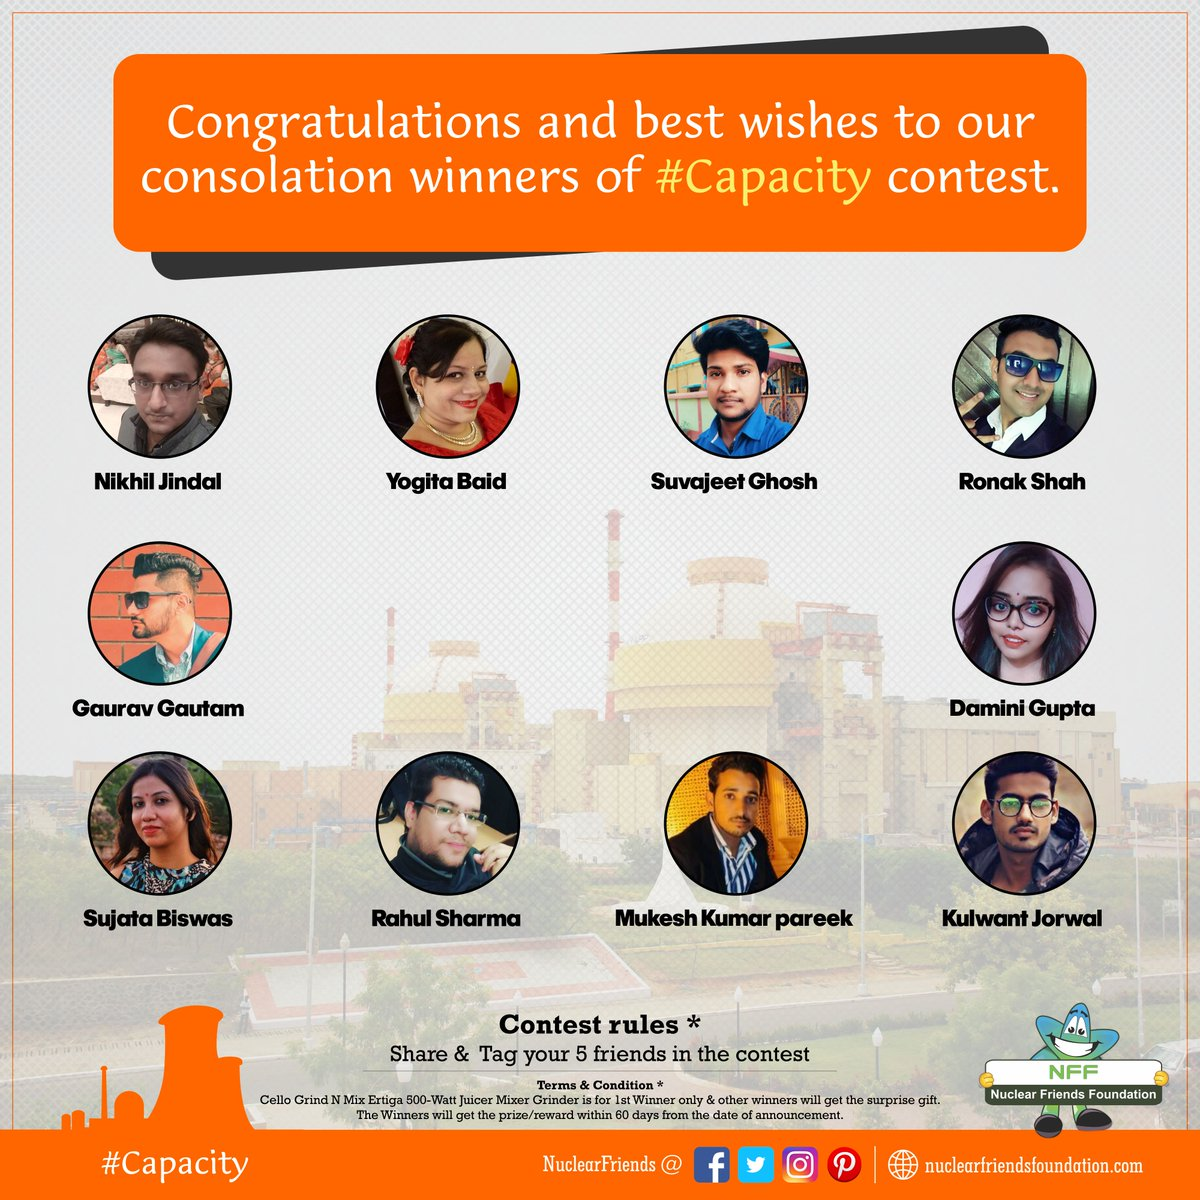 #ContestAlert Congratulations and best wishes to our consolation winners of #Capacity contest.  Reach us @ http://nuclearfriendsfoundation.com  #Contest #like #RT  #comment #chance #Win #prizes #Today #goodluck #giveaway #competition  #ContestEntry #entertowin #ThursdayThoughts